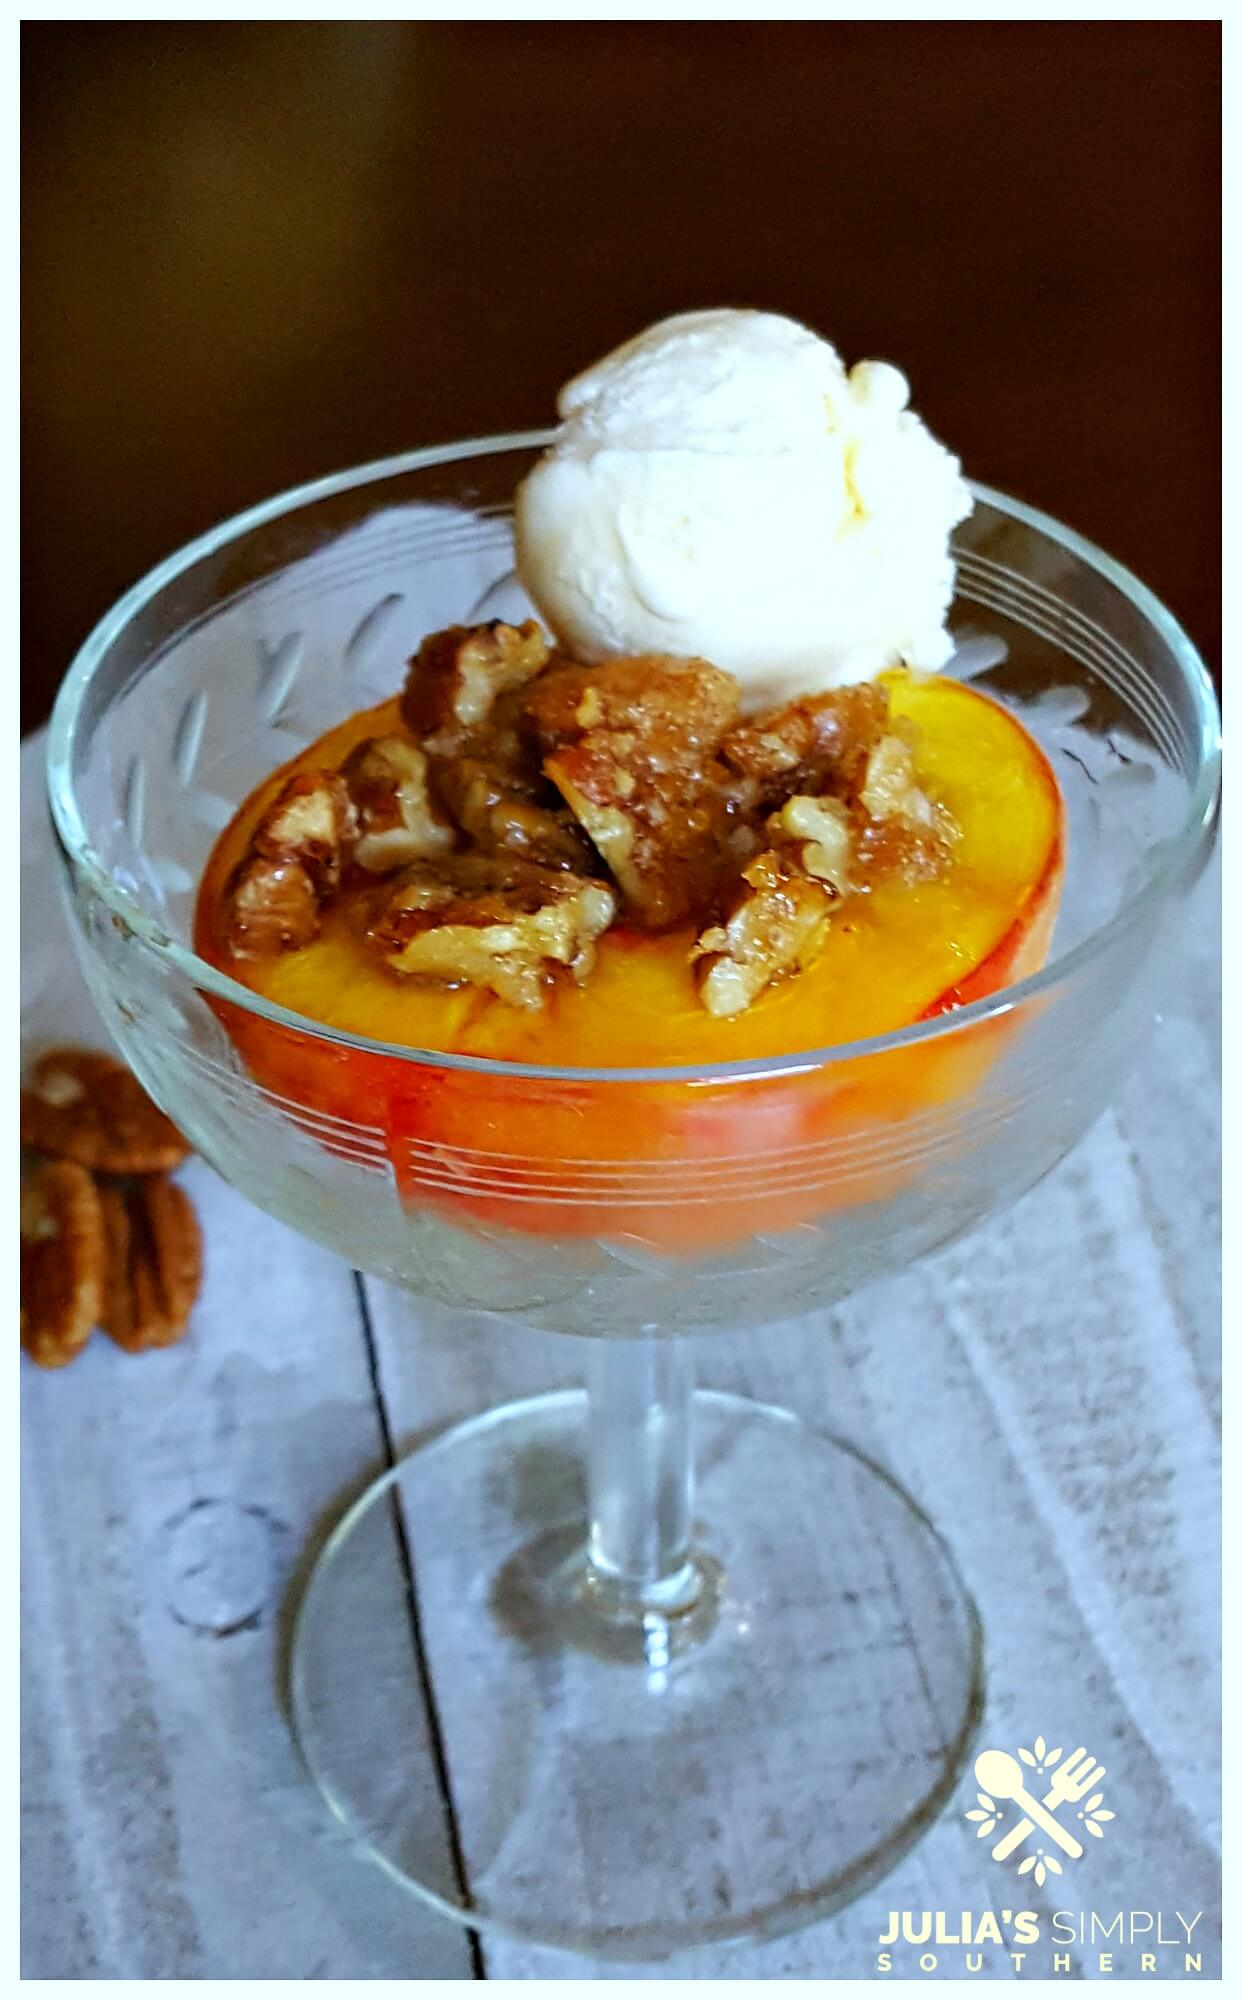 Delicious bourbon peach dessert baked in the oven